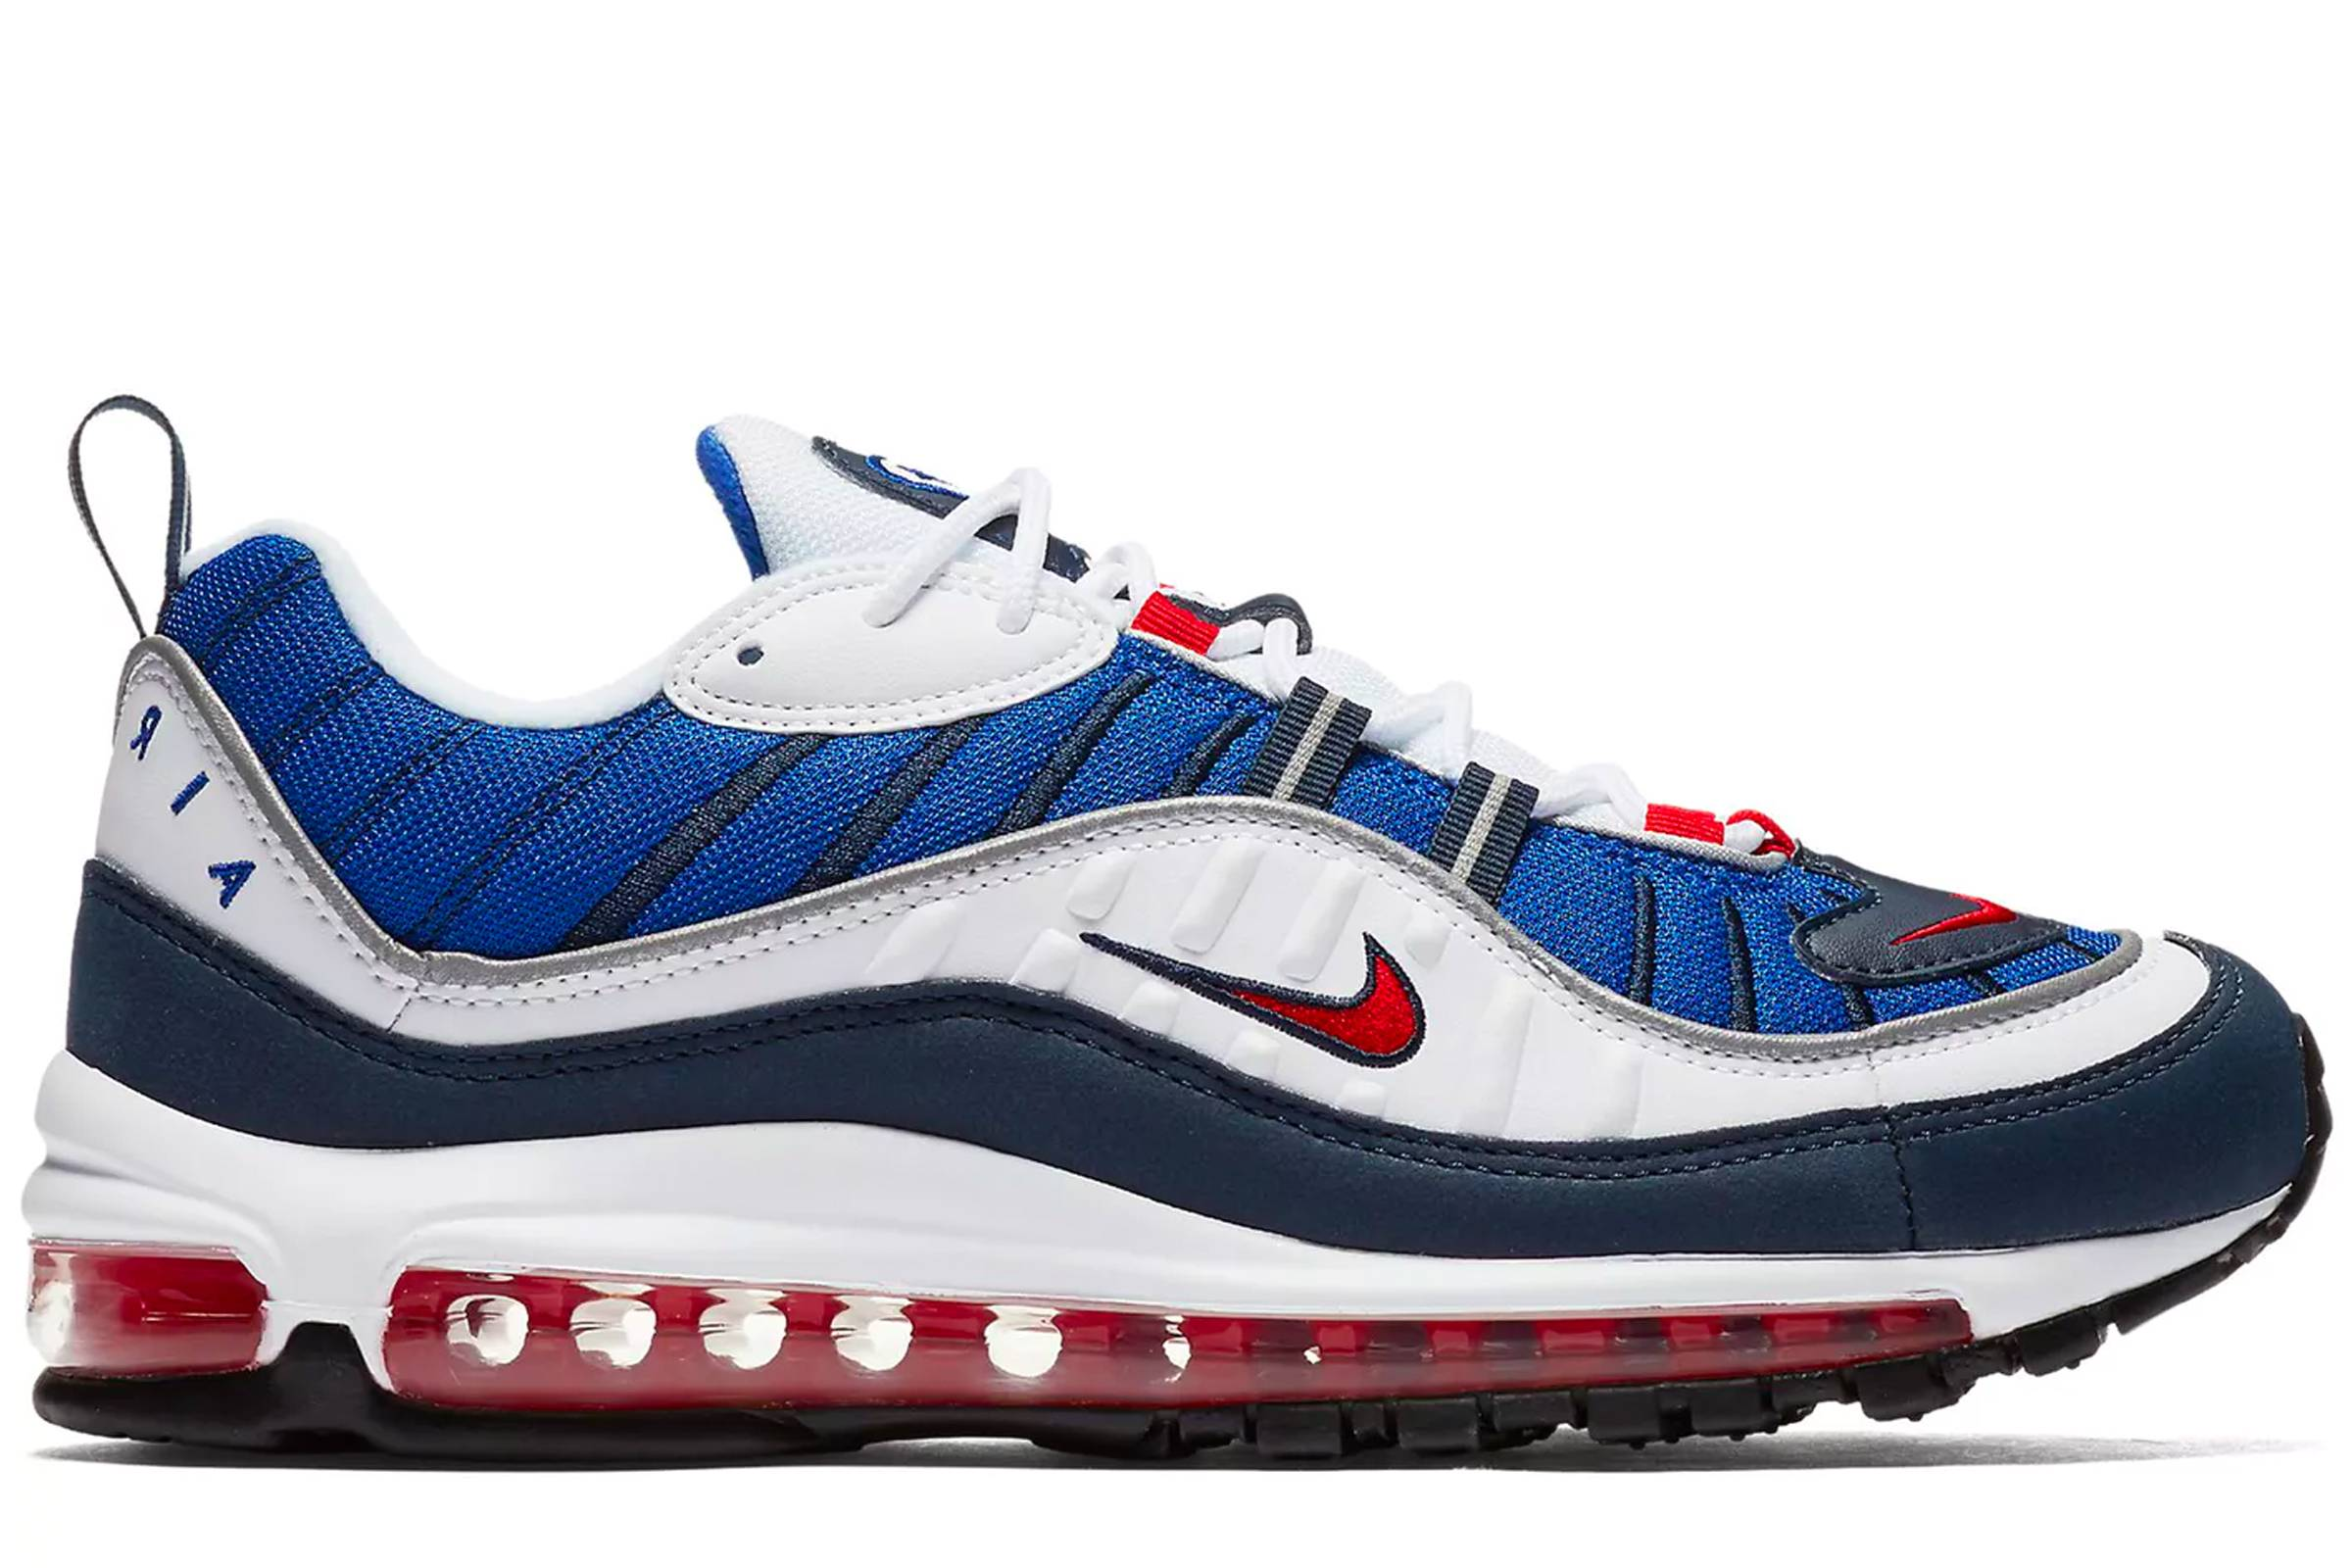 official photos 76468 c0957 Nike's Problem Child: A History of the Air Max 98 - Air Max 98 ...